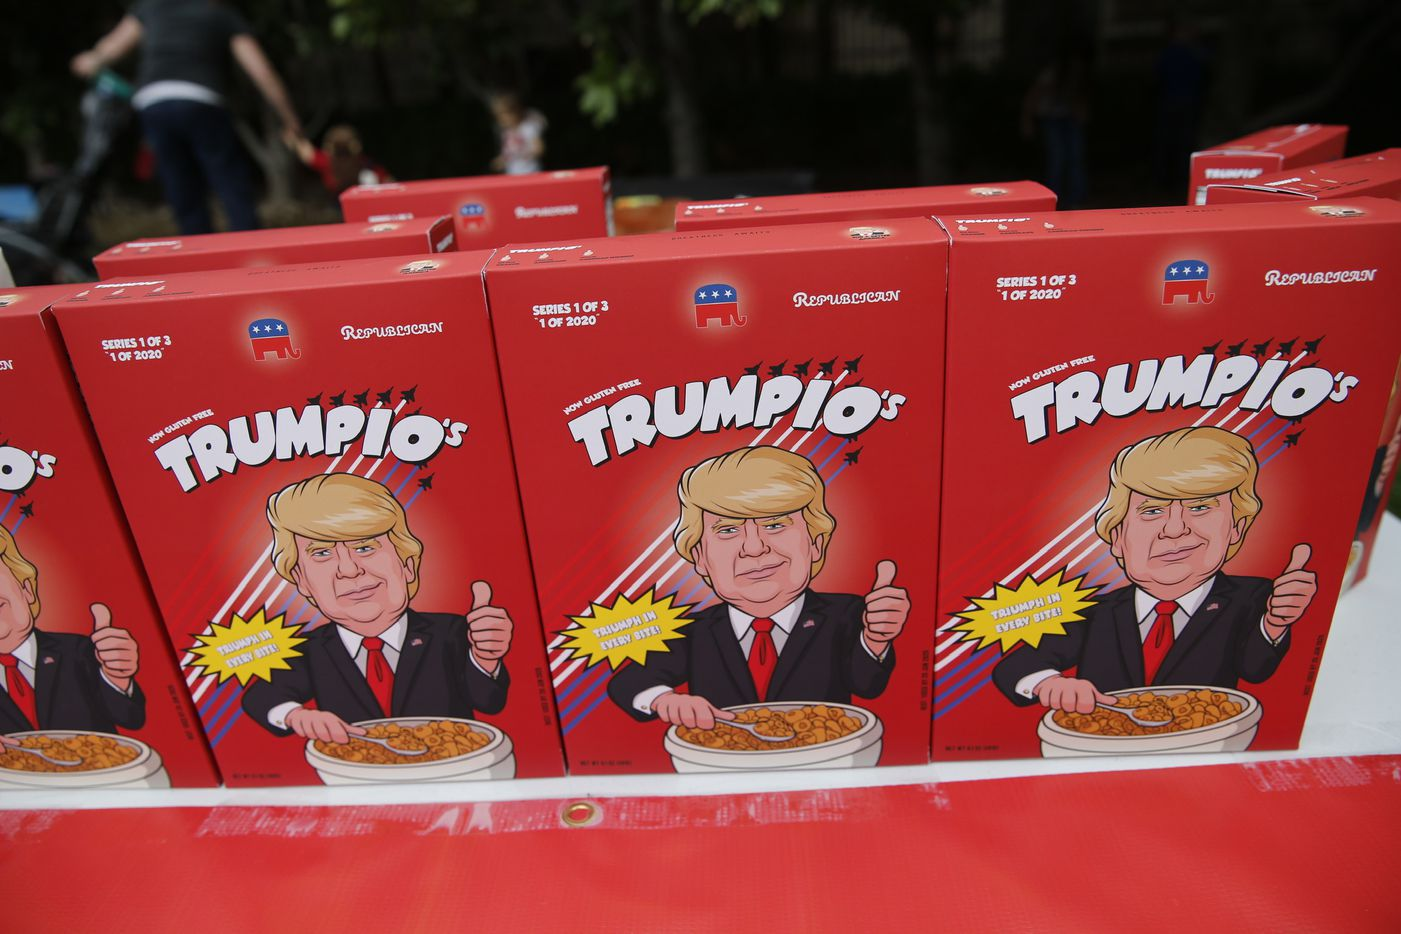 Trumpio's cereal for sale outside of the Keep America Great Rally for President Donald Trump at the American Airlines Center in Dallas, on Thursday, October 17, 2019.